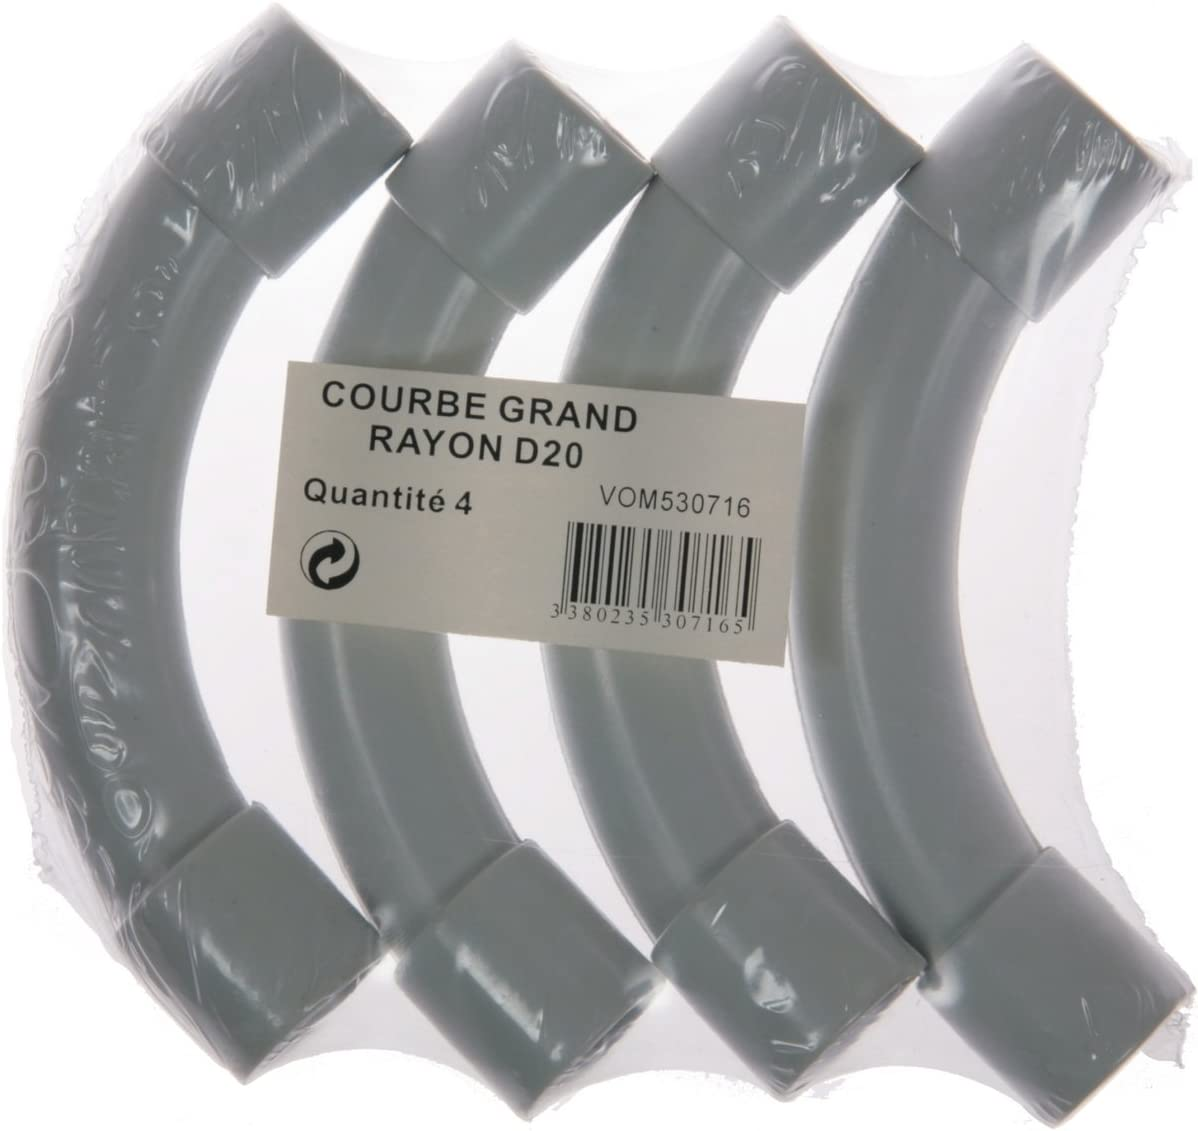 Voltman VOM530715 4 Courbes grand rayon Diam/ètre 16 mm